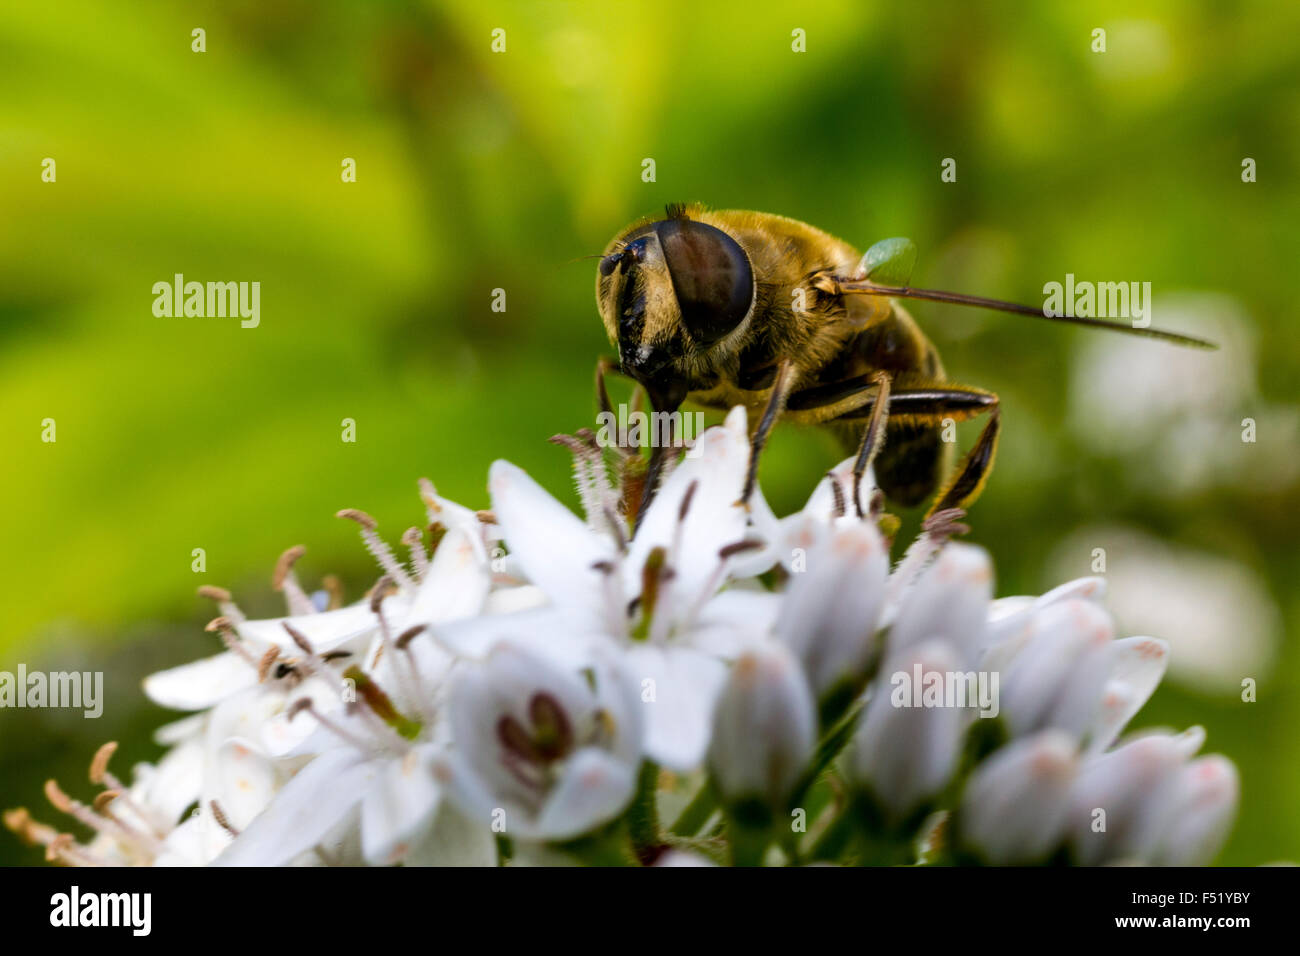 Close Up Detail of a Bee Hover-Fly (Volucella bombylans) Feeding on nectar from a White Umbellifer Flower. - Stock Image